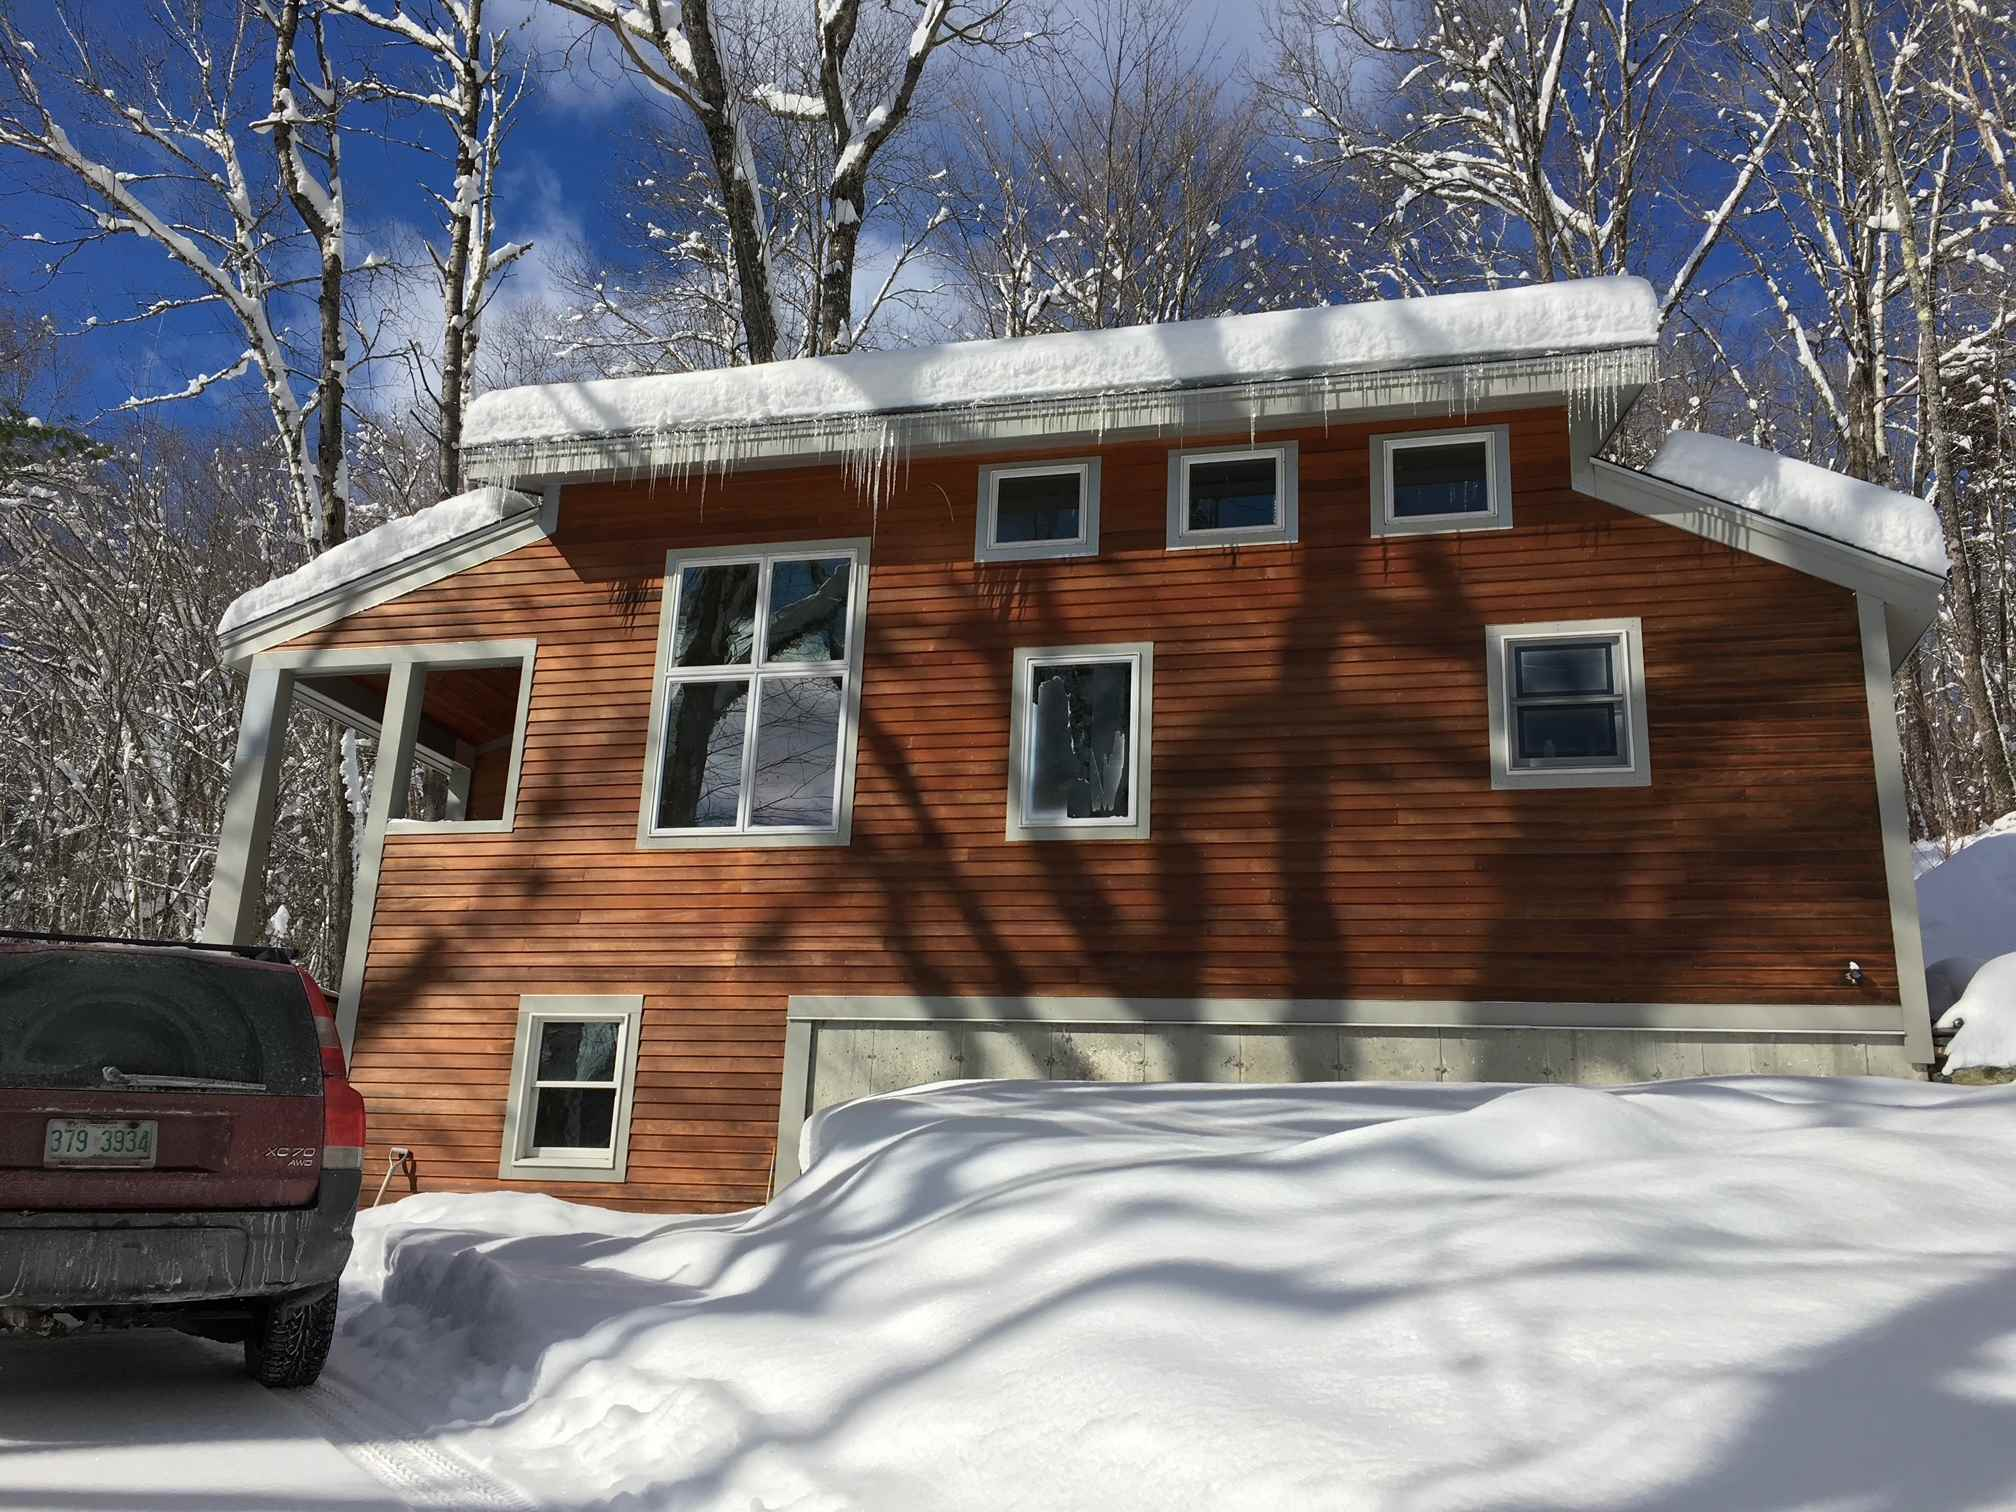 Photo of 235 Streeter Pond Drive Sugar Hill NH 03586